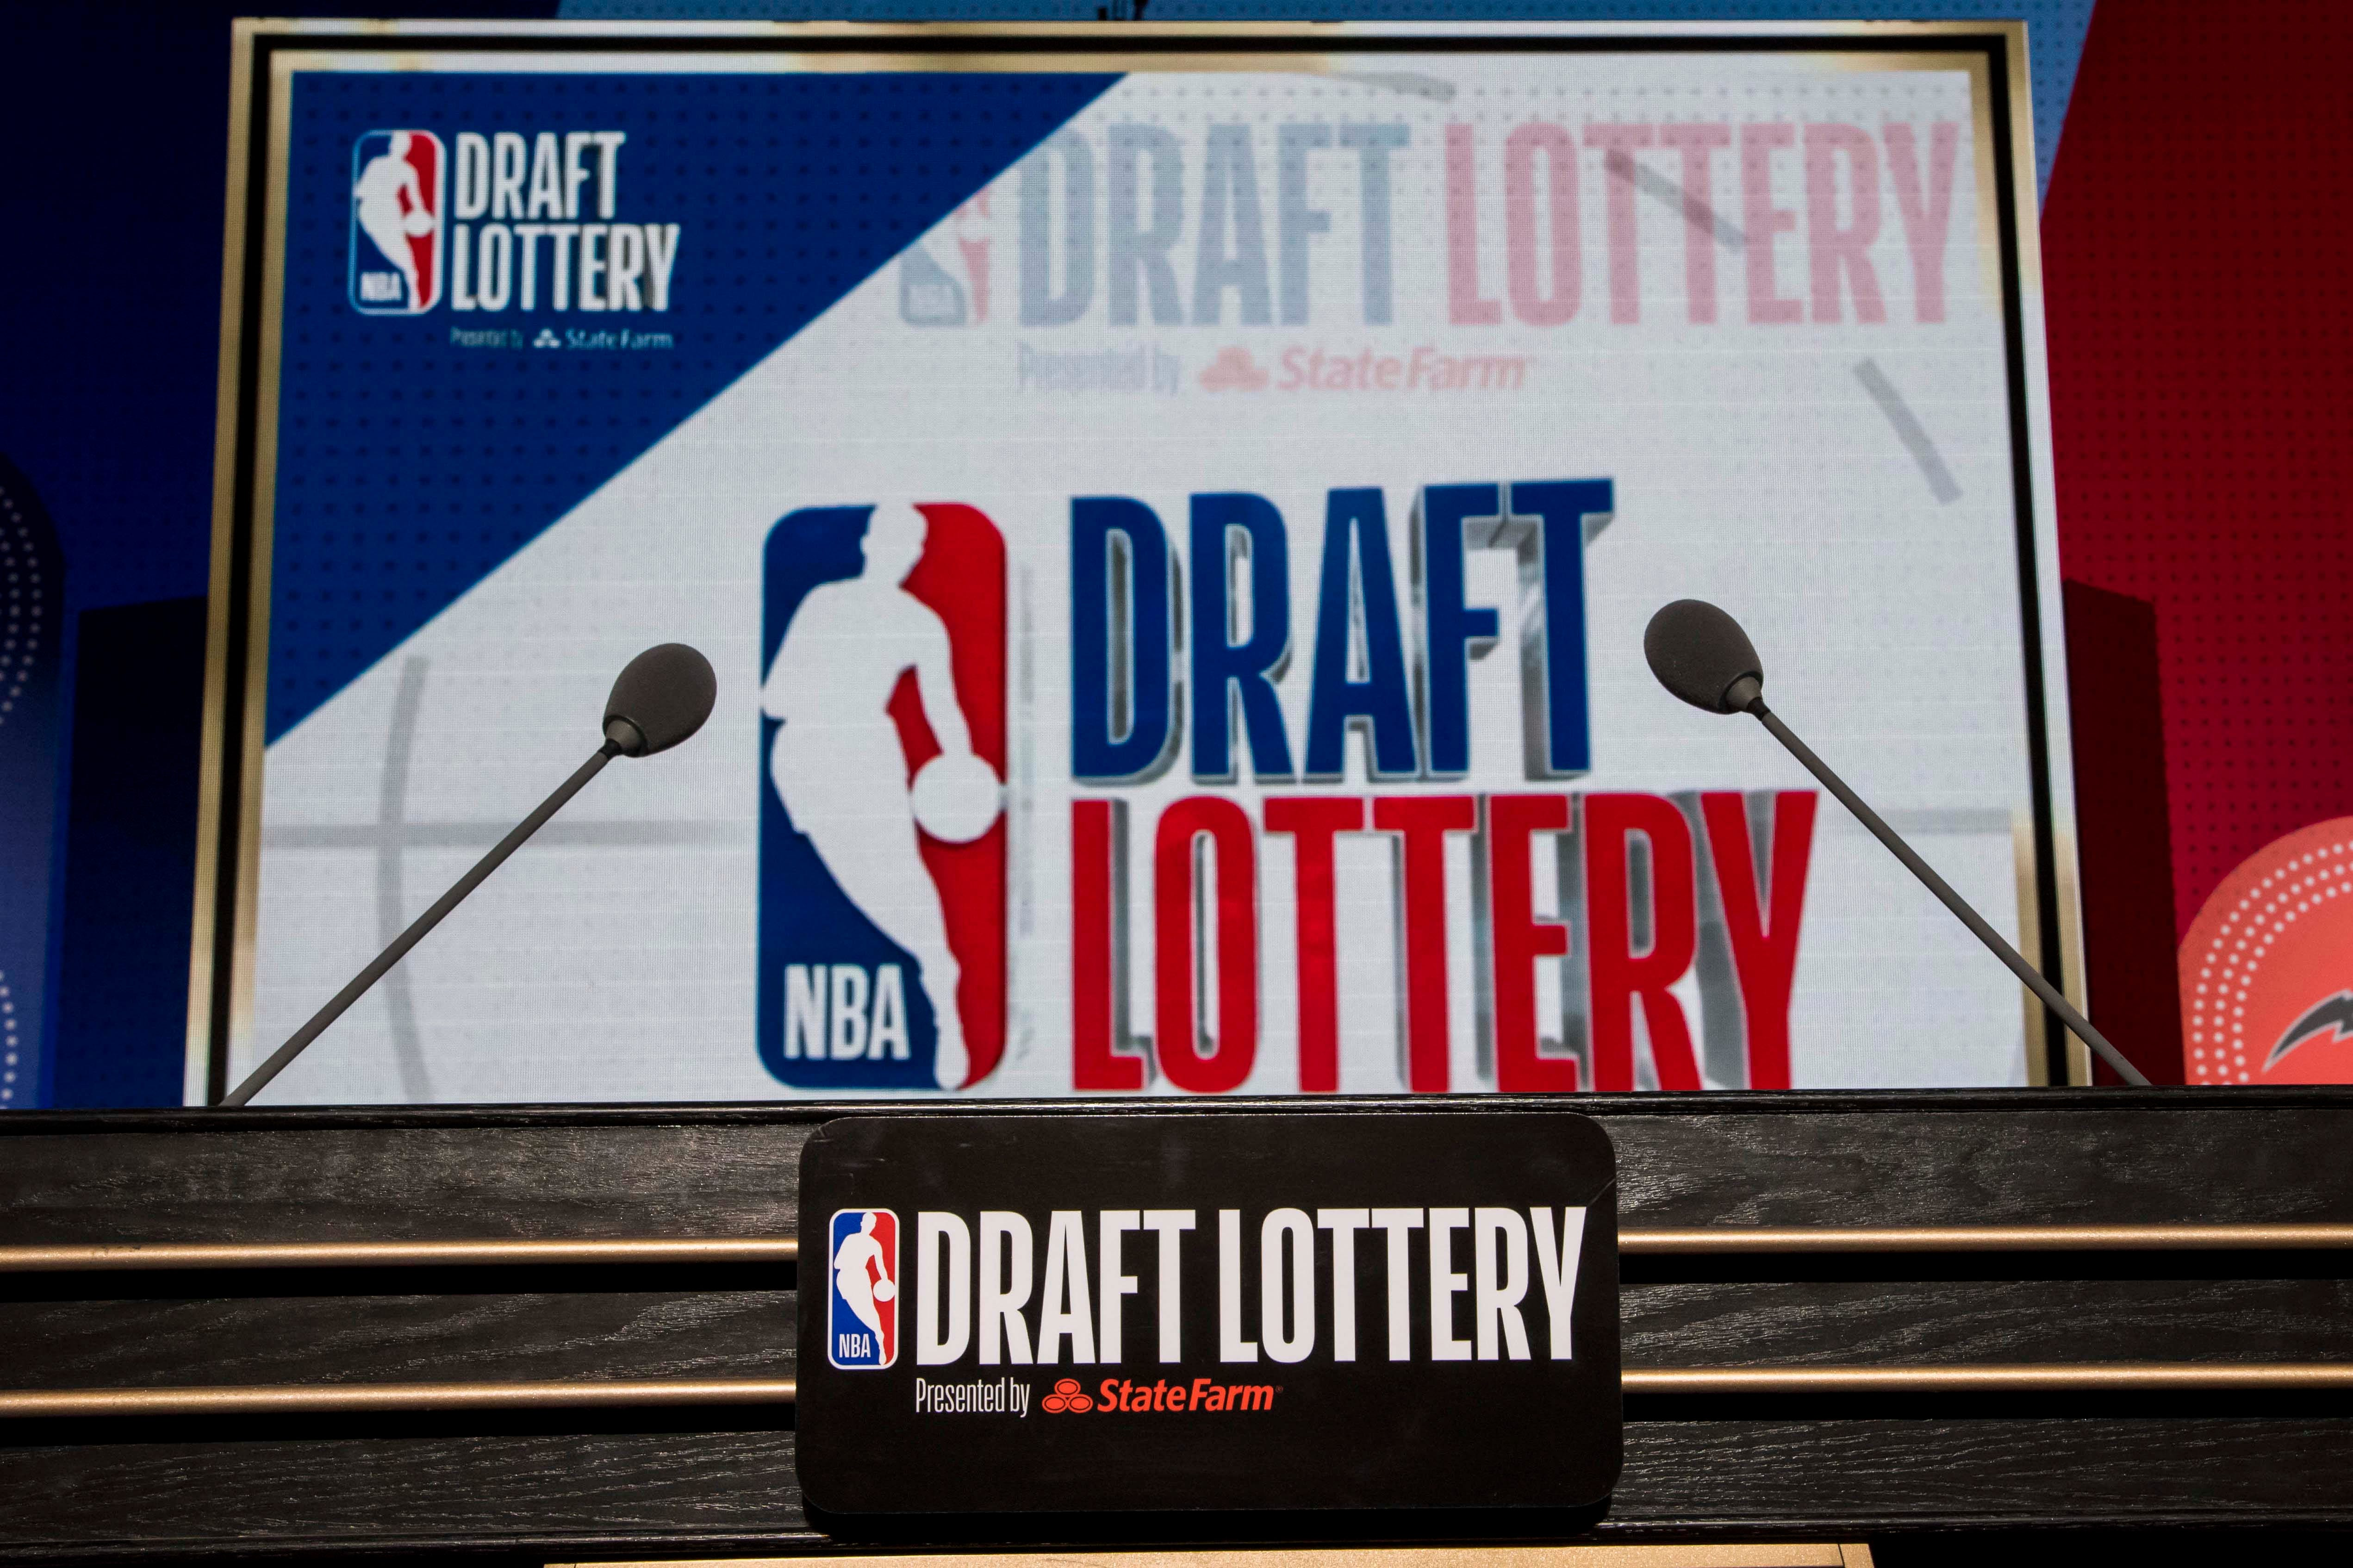 Fans were furious with ESPN's NBA draft lottery show